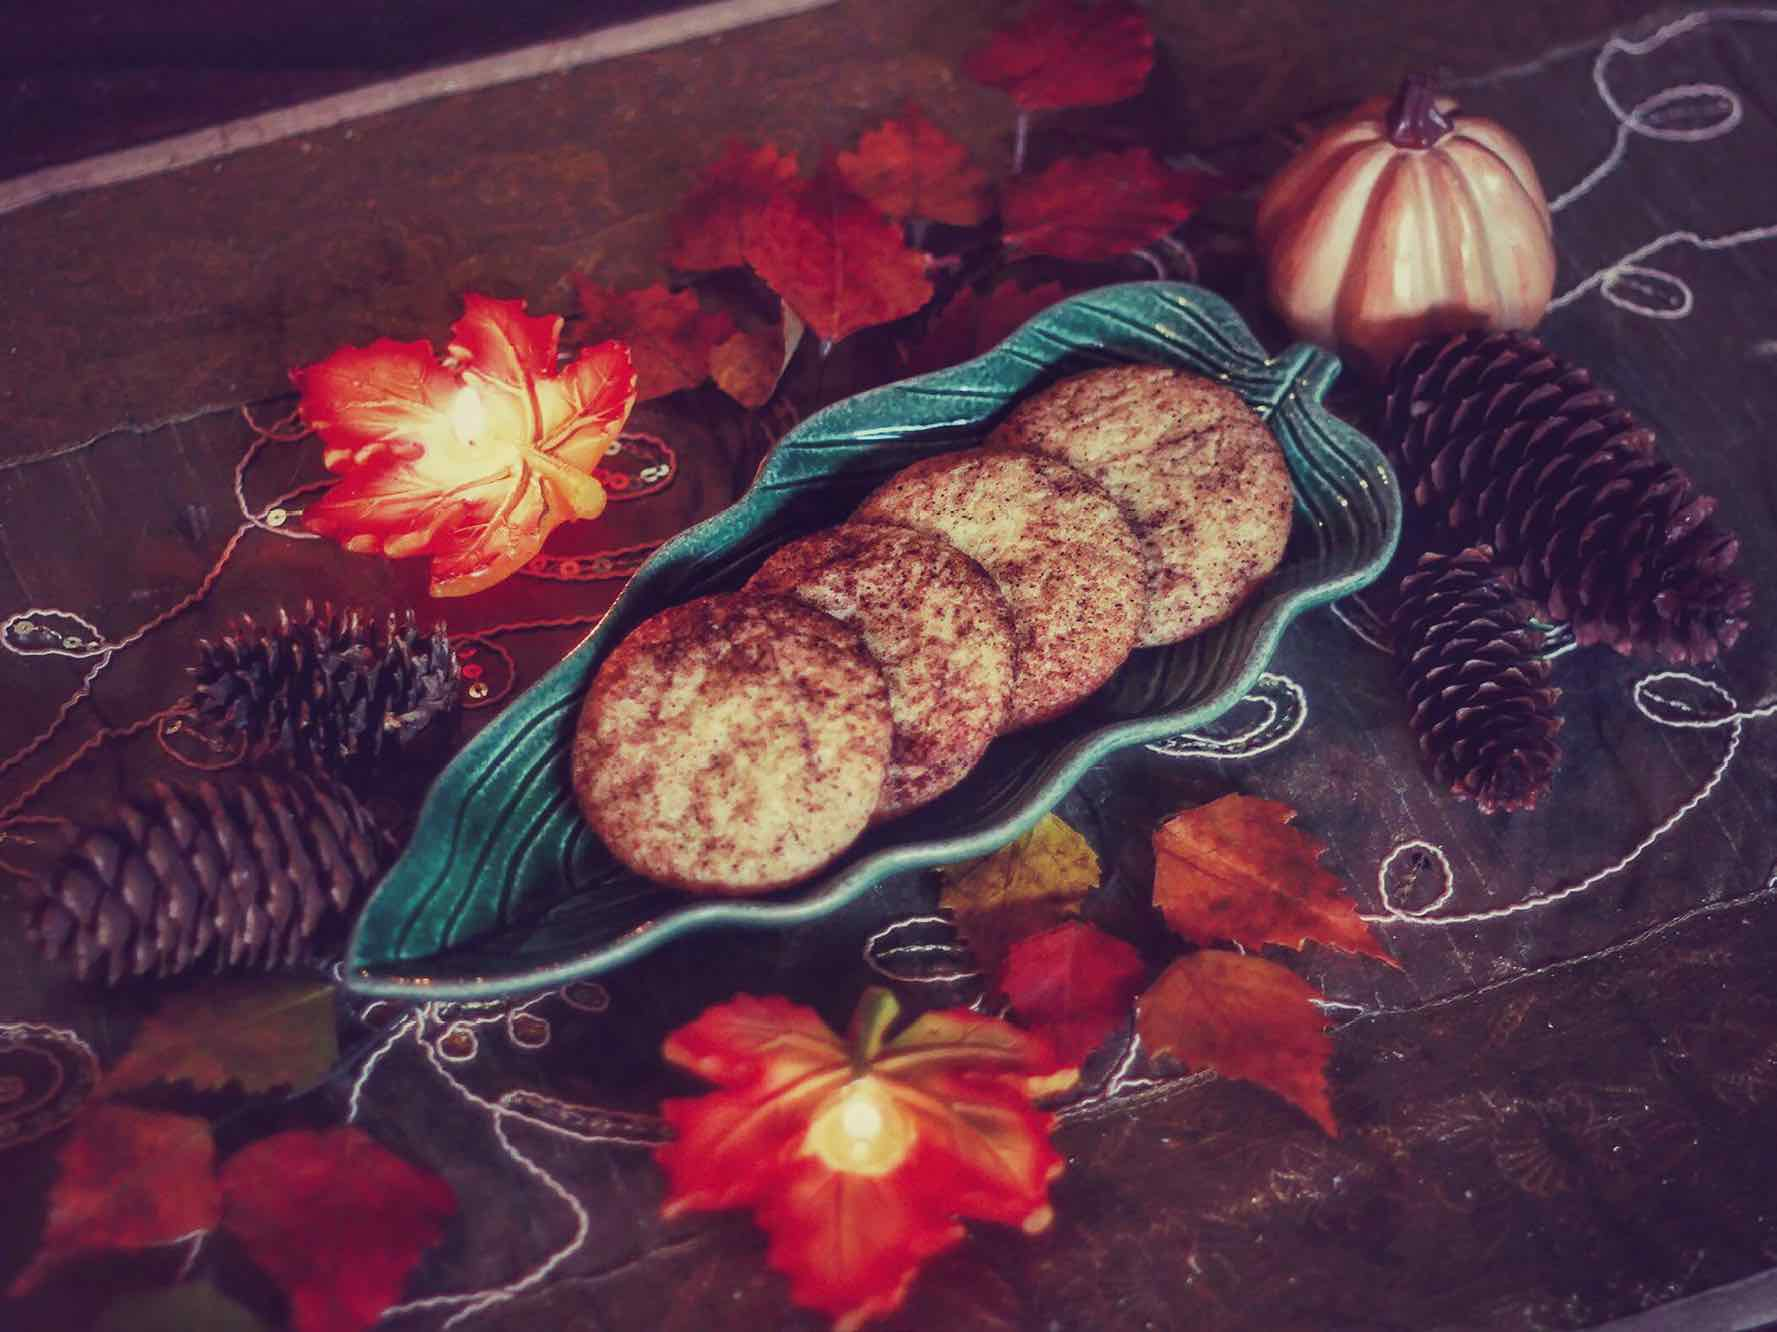 Witch Cottage Aesthetic - Camilla Rose Gjertsen - Cookies-01